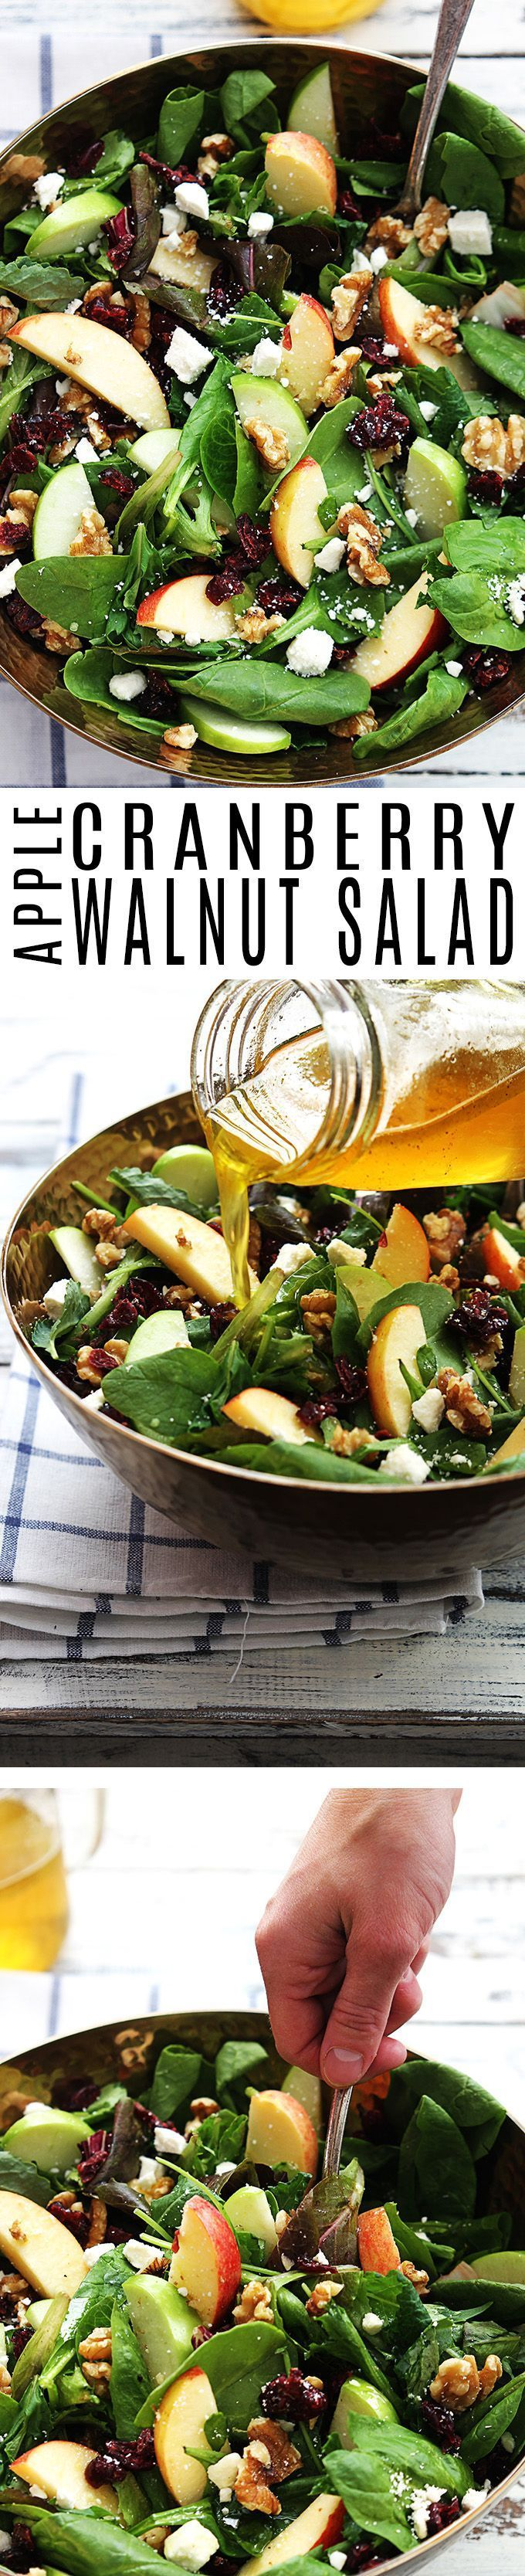 Crisp apples, dried cranberries, feta cheese, and hearty walnuts come together in a fresh salad.